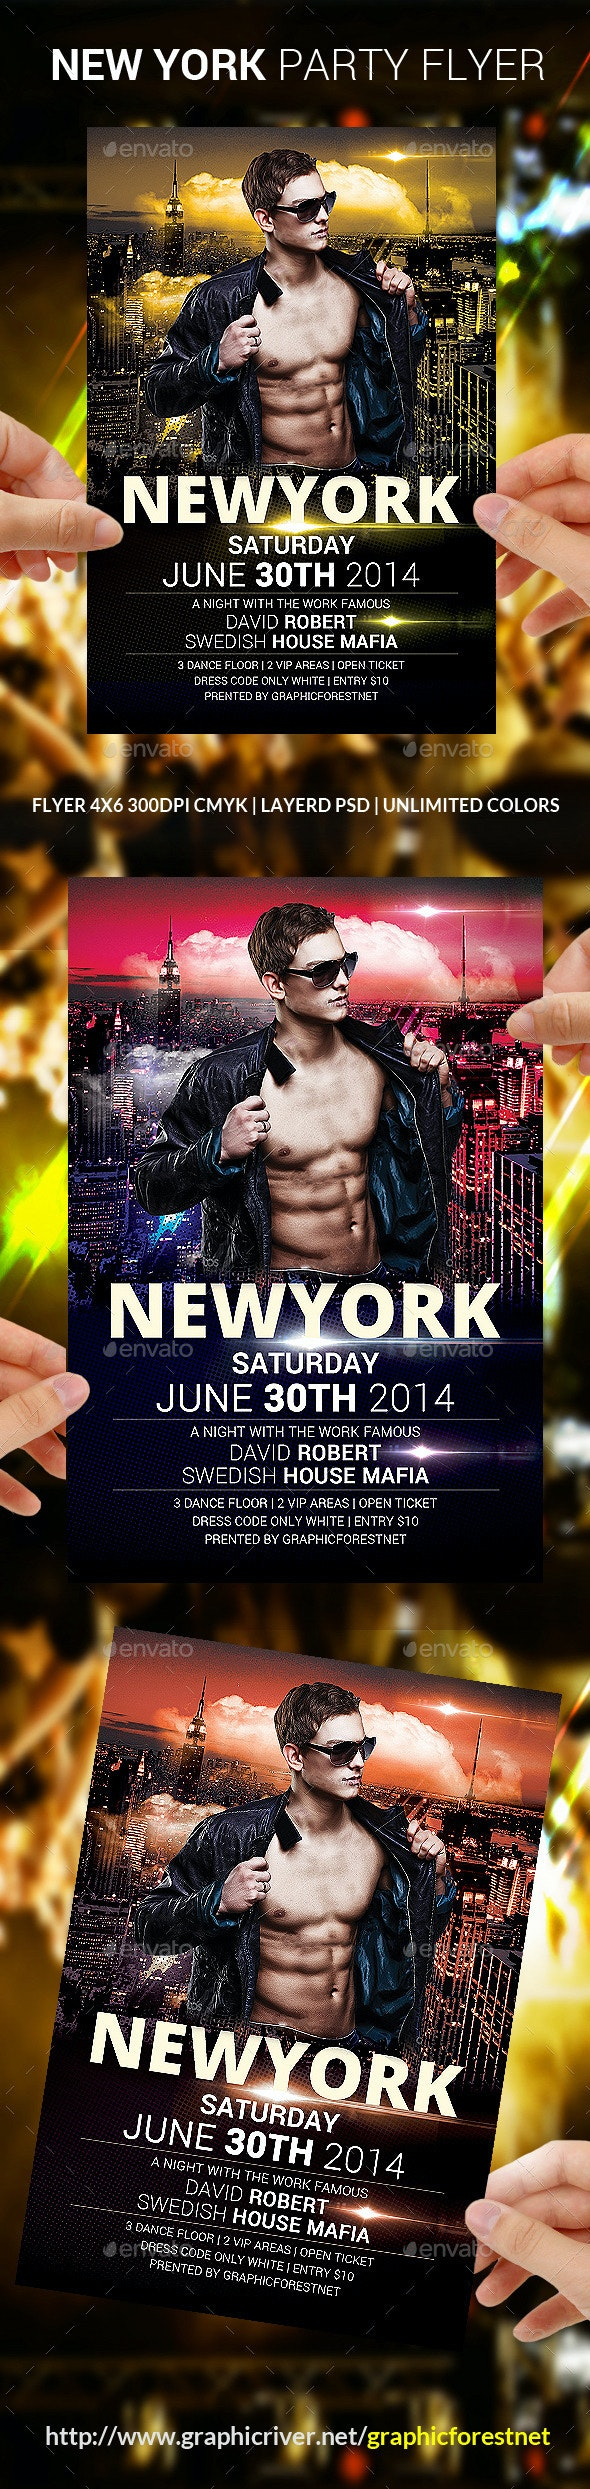 New York Party Flyer Template - Clubs & Parties Events